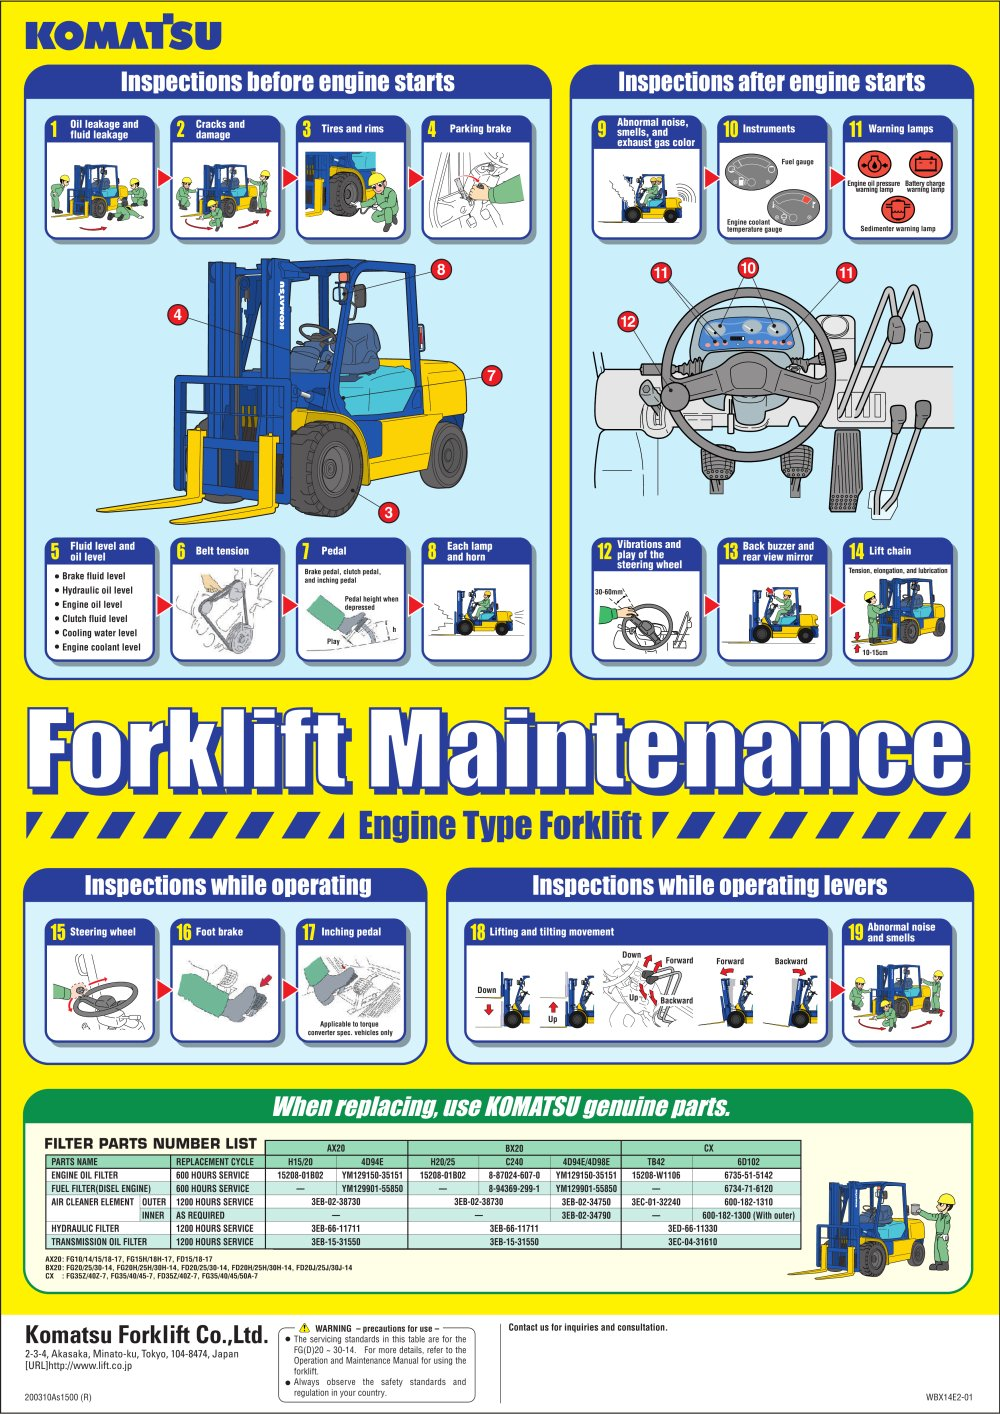 Komatsu Forklift Manuals Wiring Diagrams Maintenance Pdf Catalogue Technical Rh Directindustry Com Specification Manual